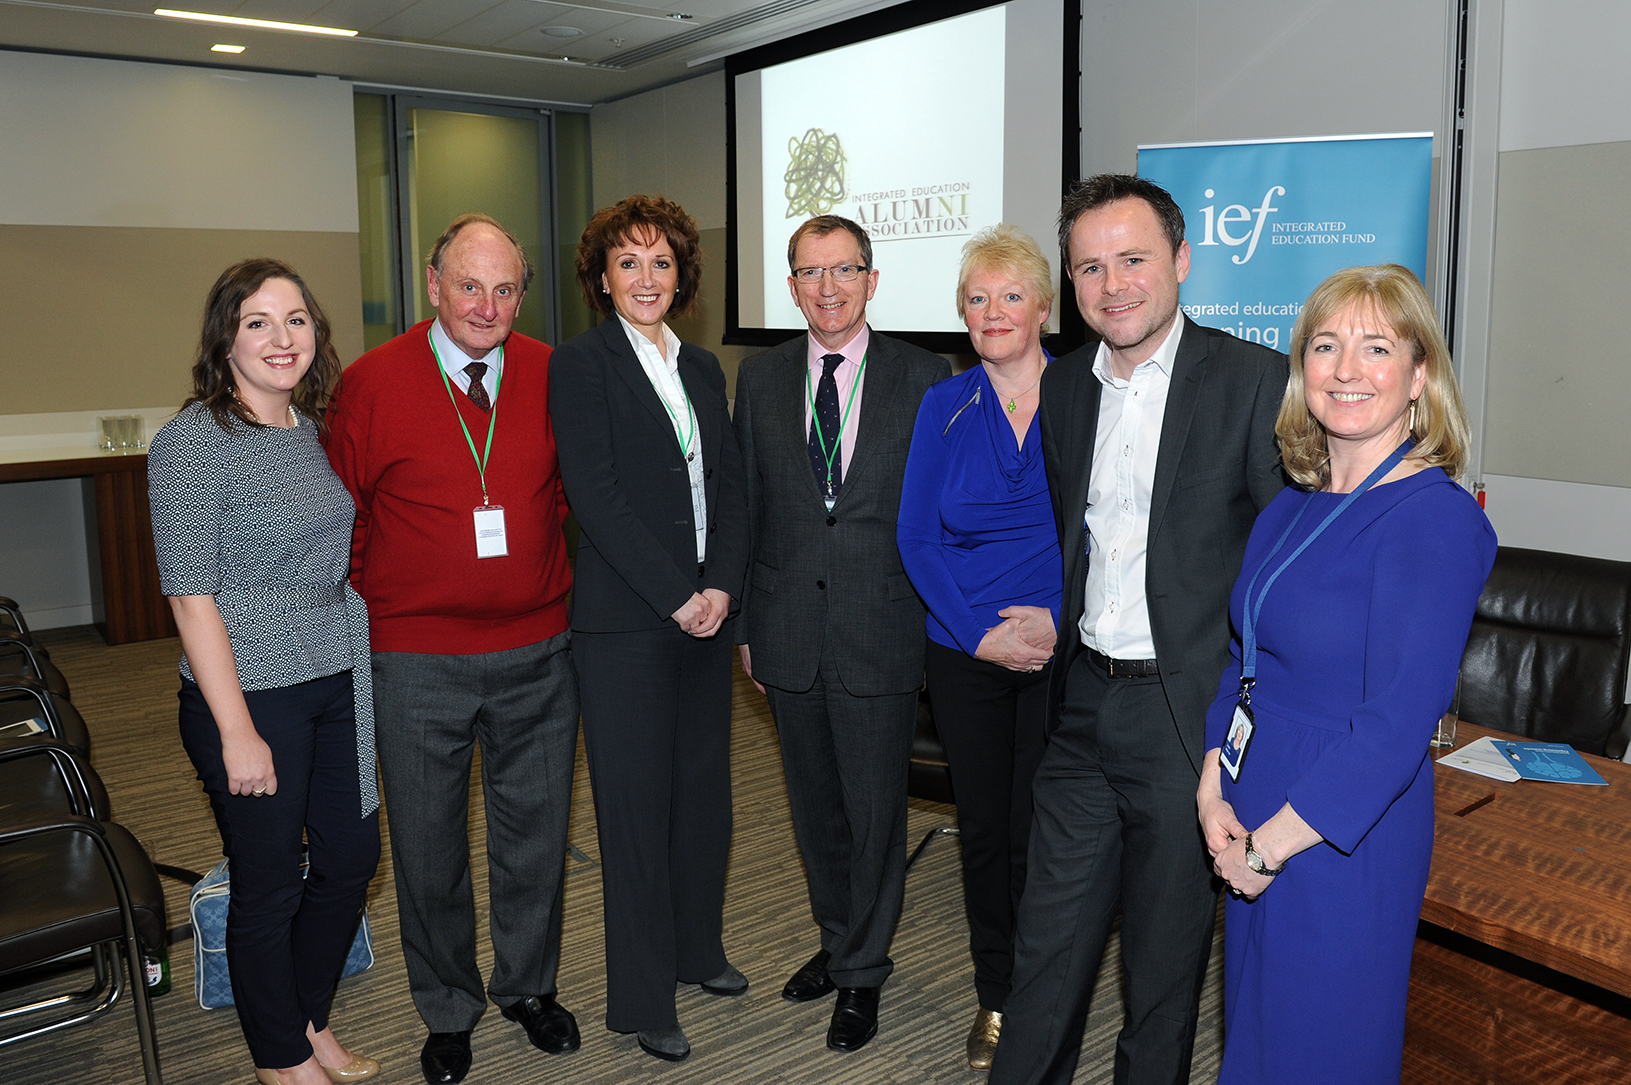 Integrate NI Article Reform Education to boost NI education. Photograph by Malcolm McNally. IE ALUMNI DELOITTE HQ. In the picture: L to R: Treasa Harkin (IEAA London), Sir Richard Needham, Karena Vaughan (Invest NI), Ian Doherty (James Doherty Meats), Mary Mckenna MBE , Euan Isles and Julie Mercer (Deloitte)